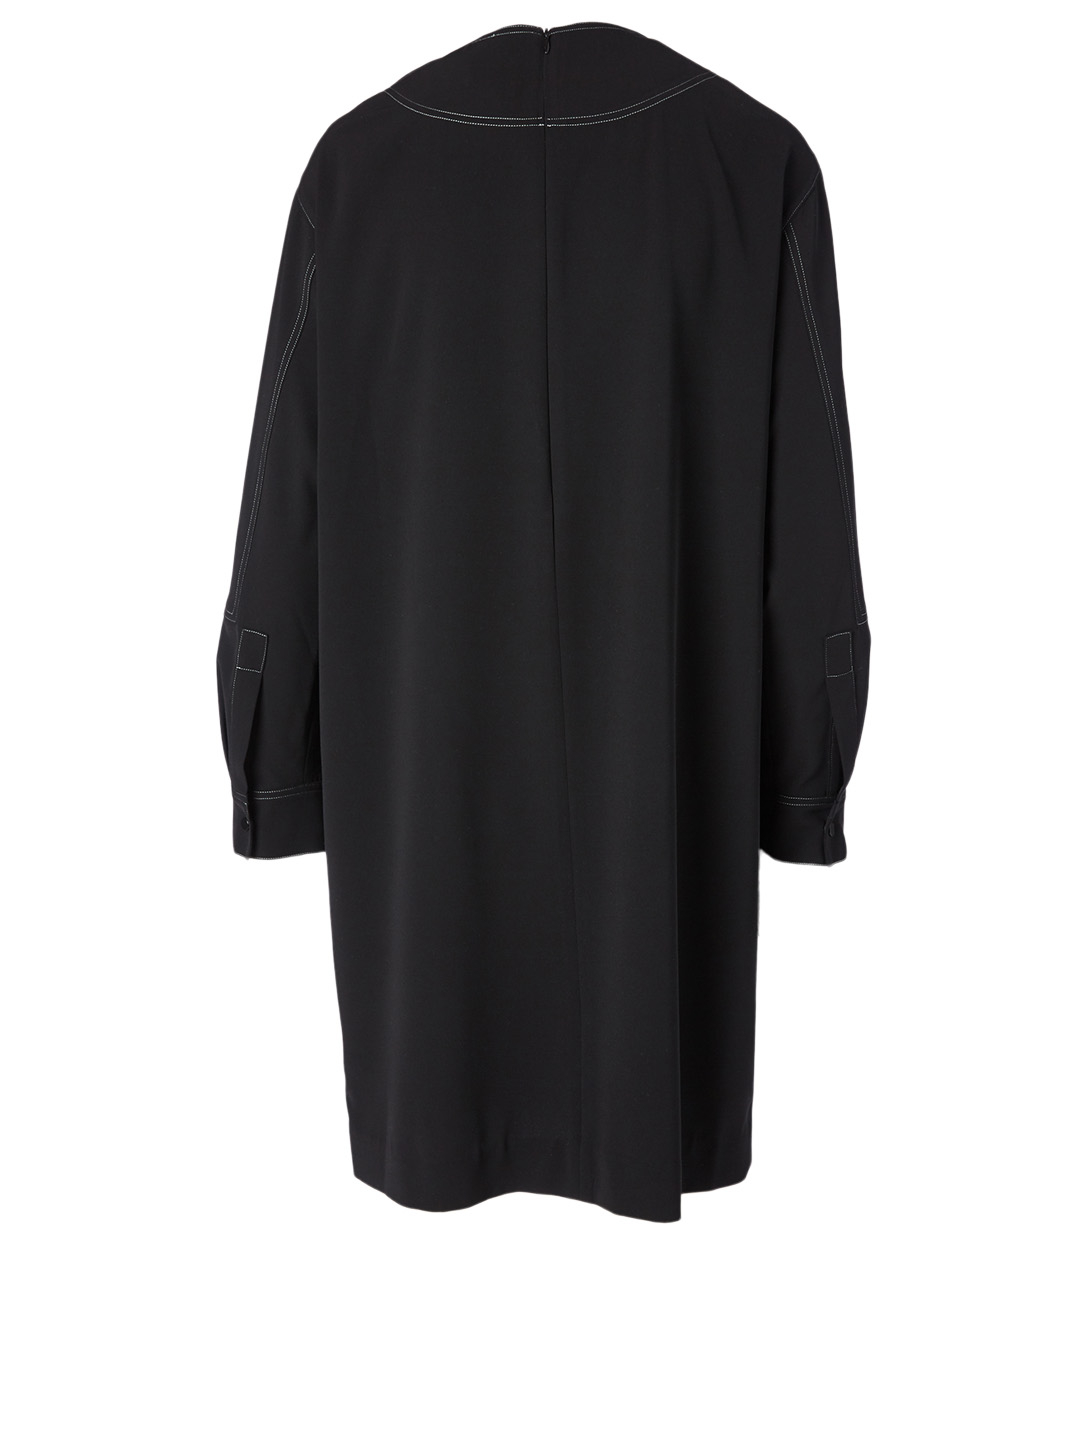 KUHO Fluid Tunic Dress Women's Black